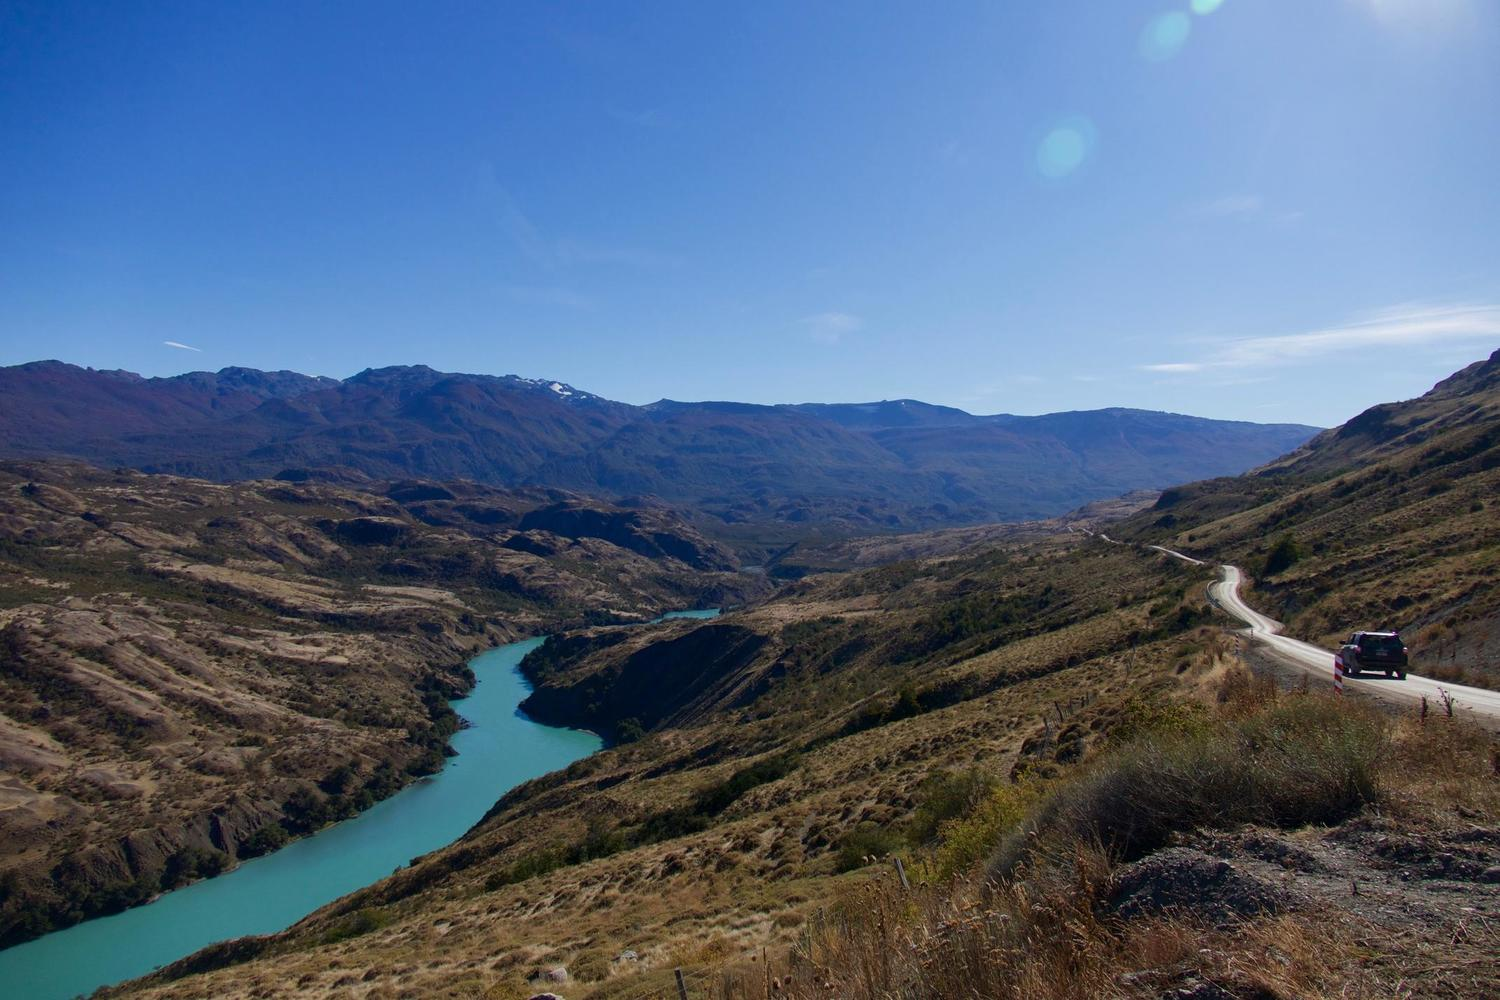 Driving the Carretera Austral